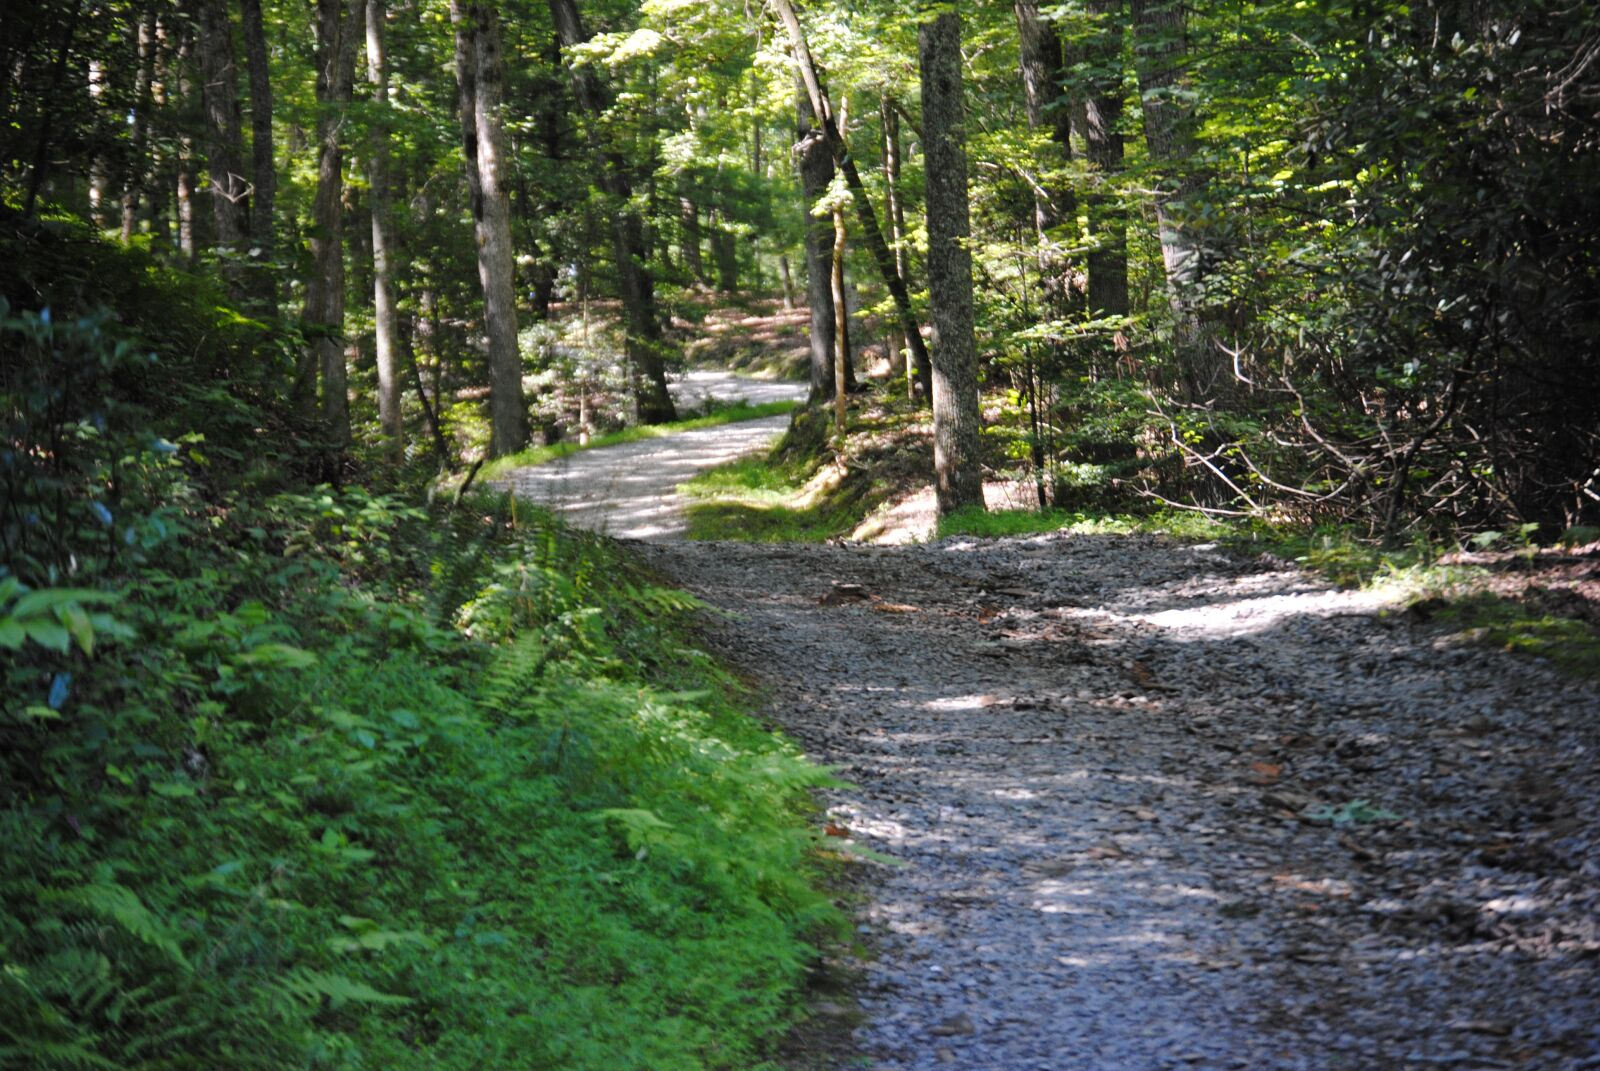 """Nikon D3000 sample photo. """"Trail, road, forest"""" photography"""